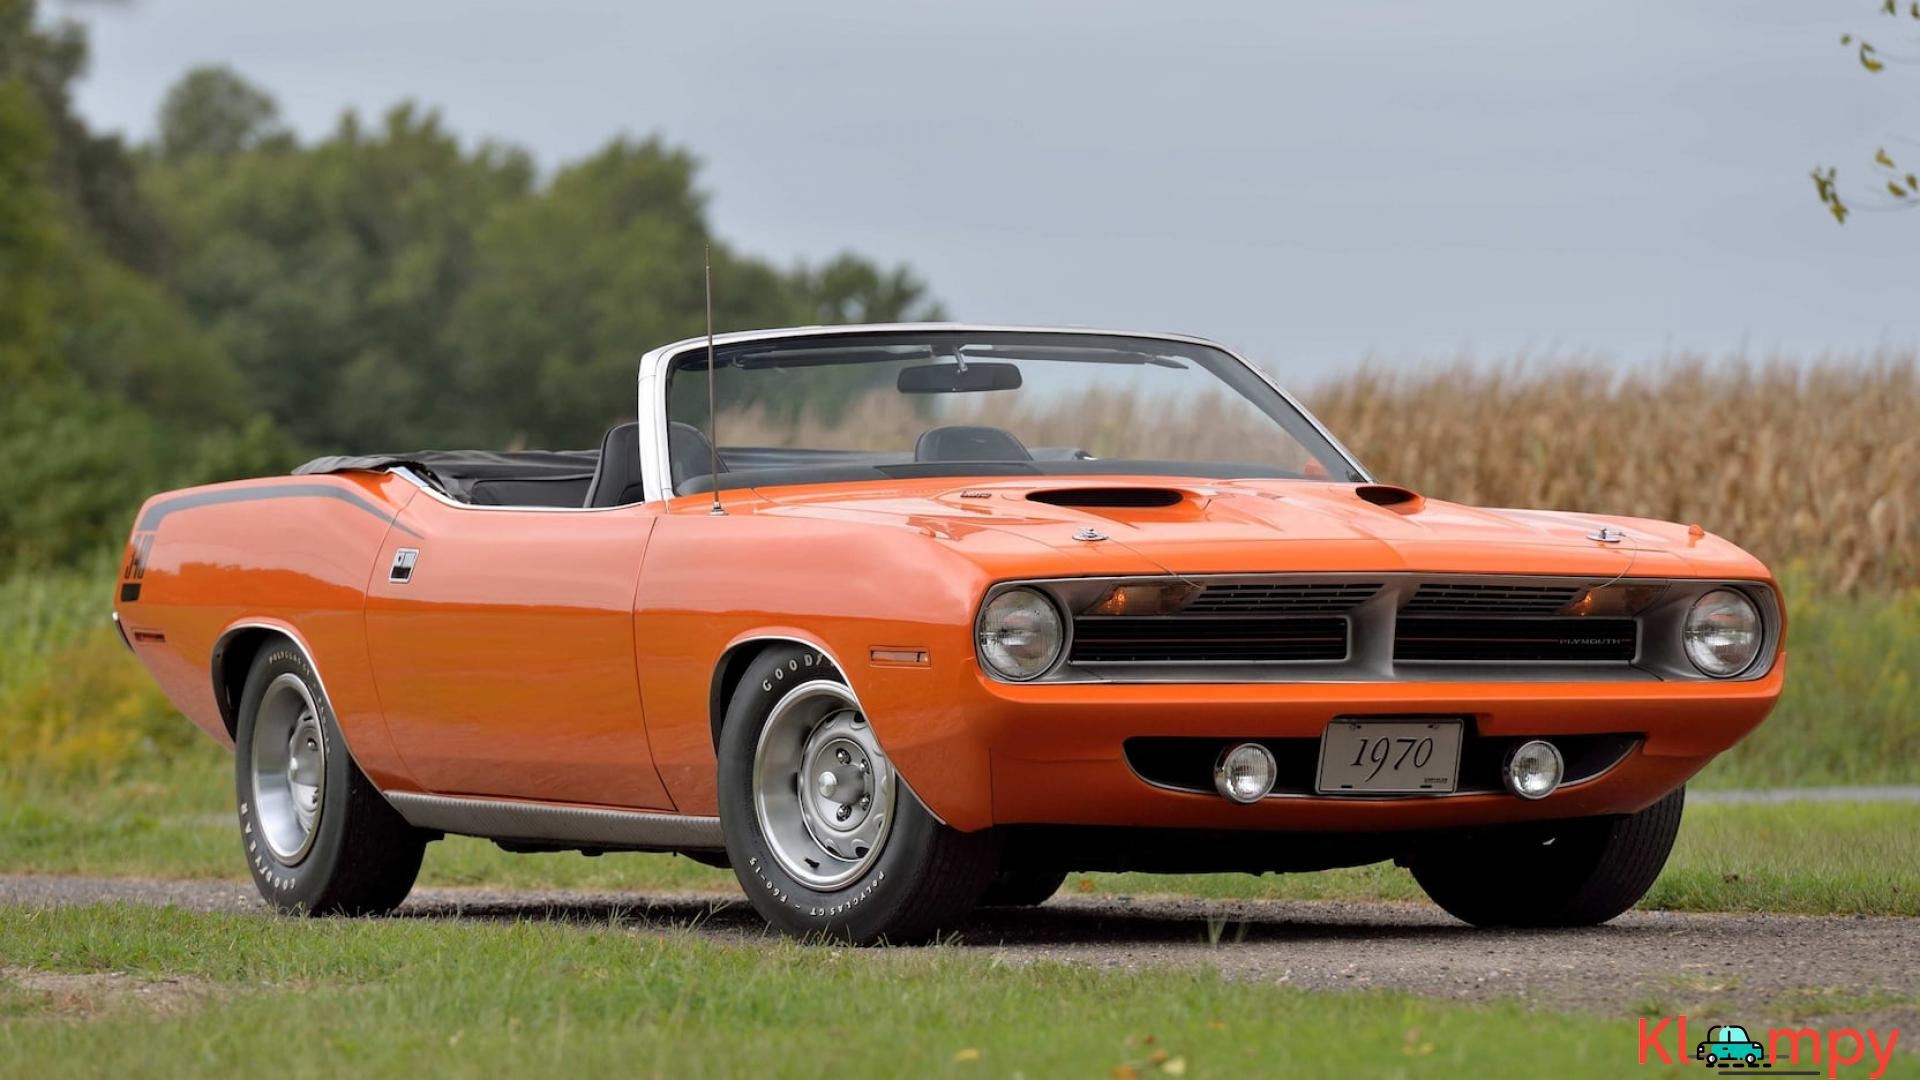 1970 Plymouth Cuda Convertible 340 Matching Numbers - 1/17